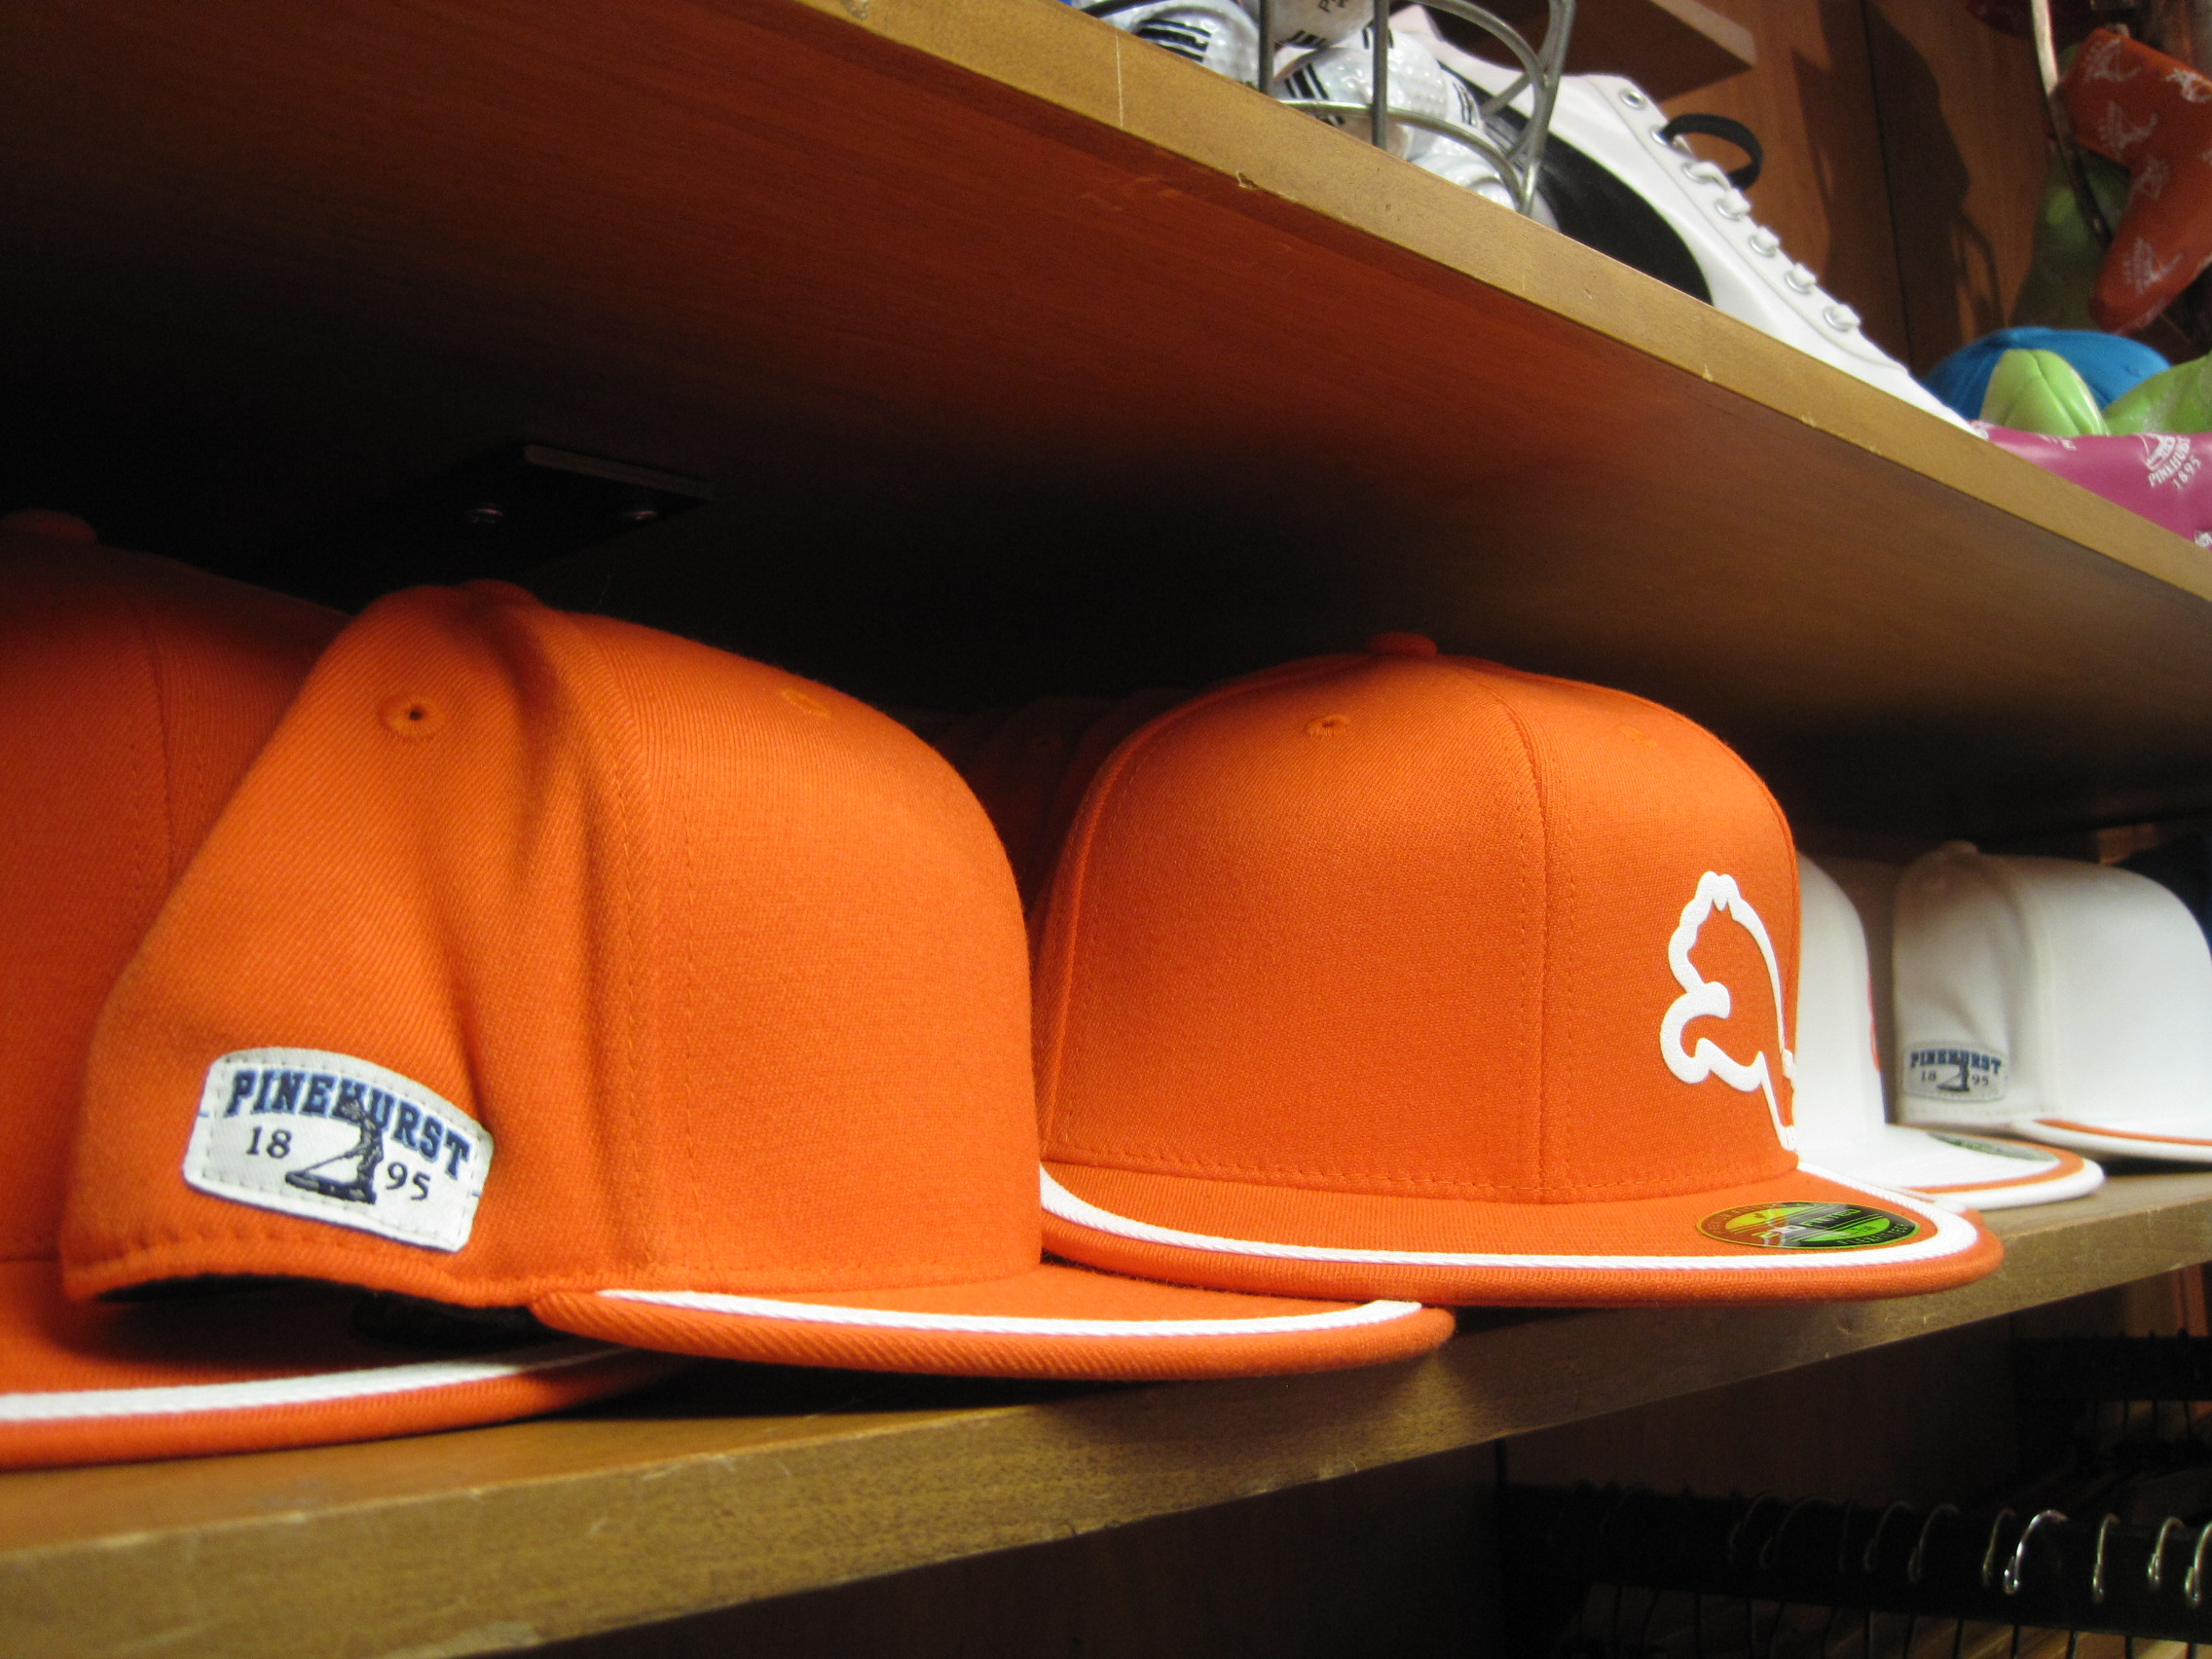 Pinehurst Club Shop Rickie Fowler